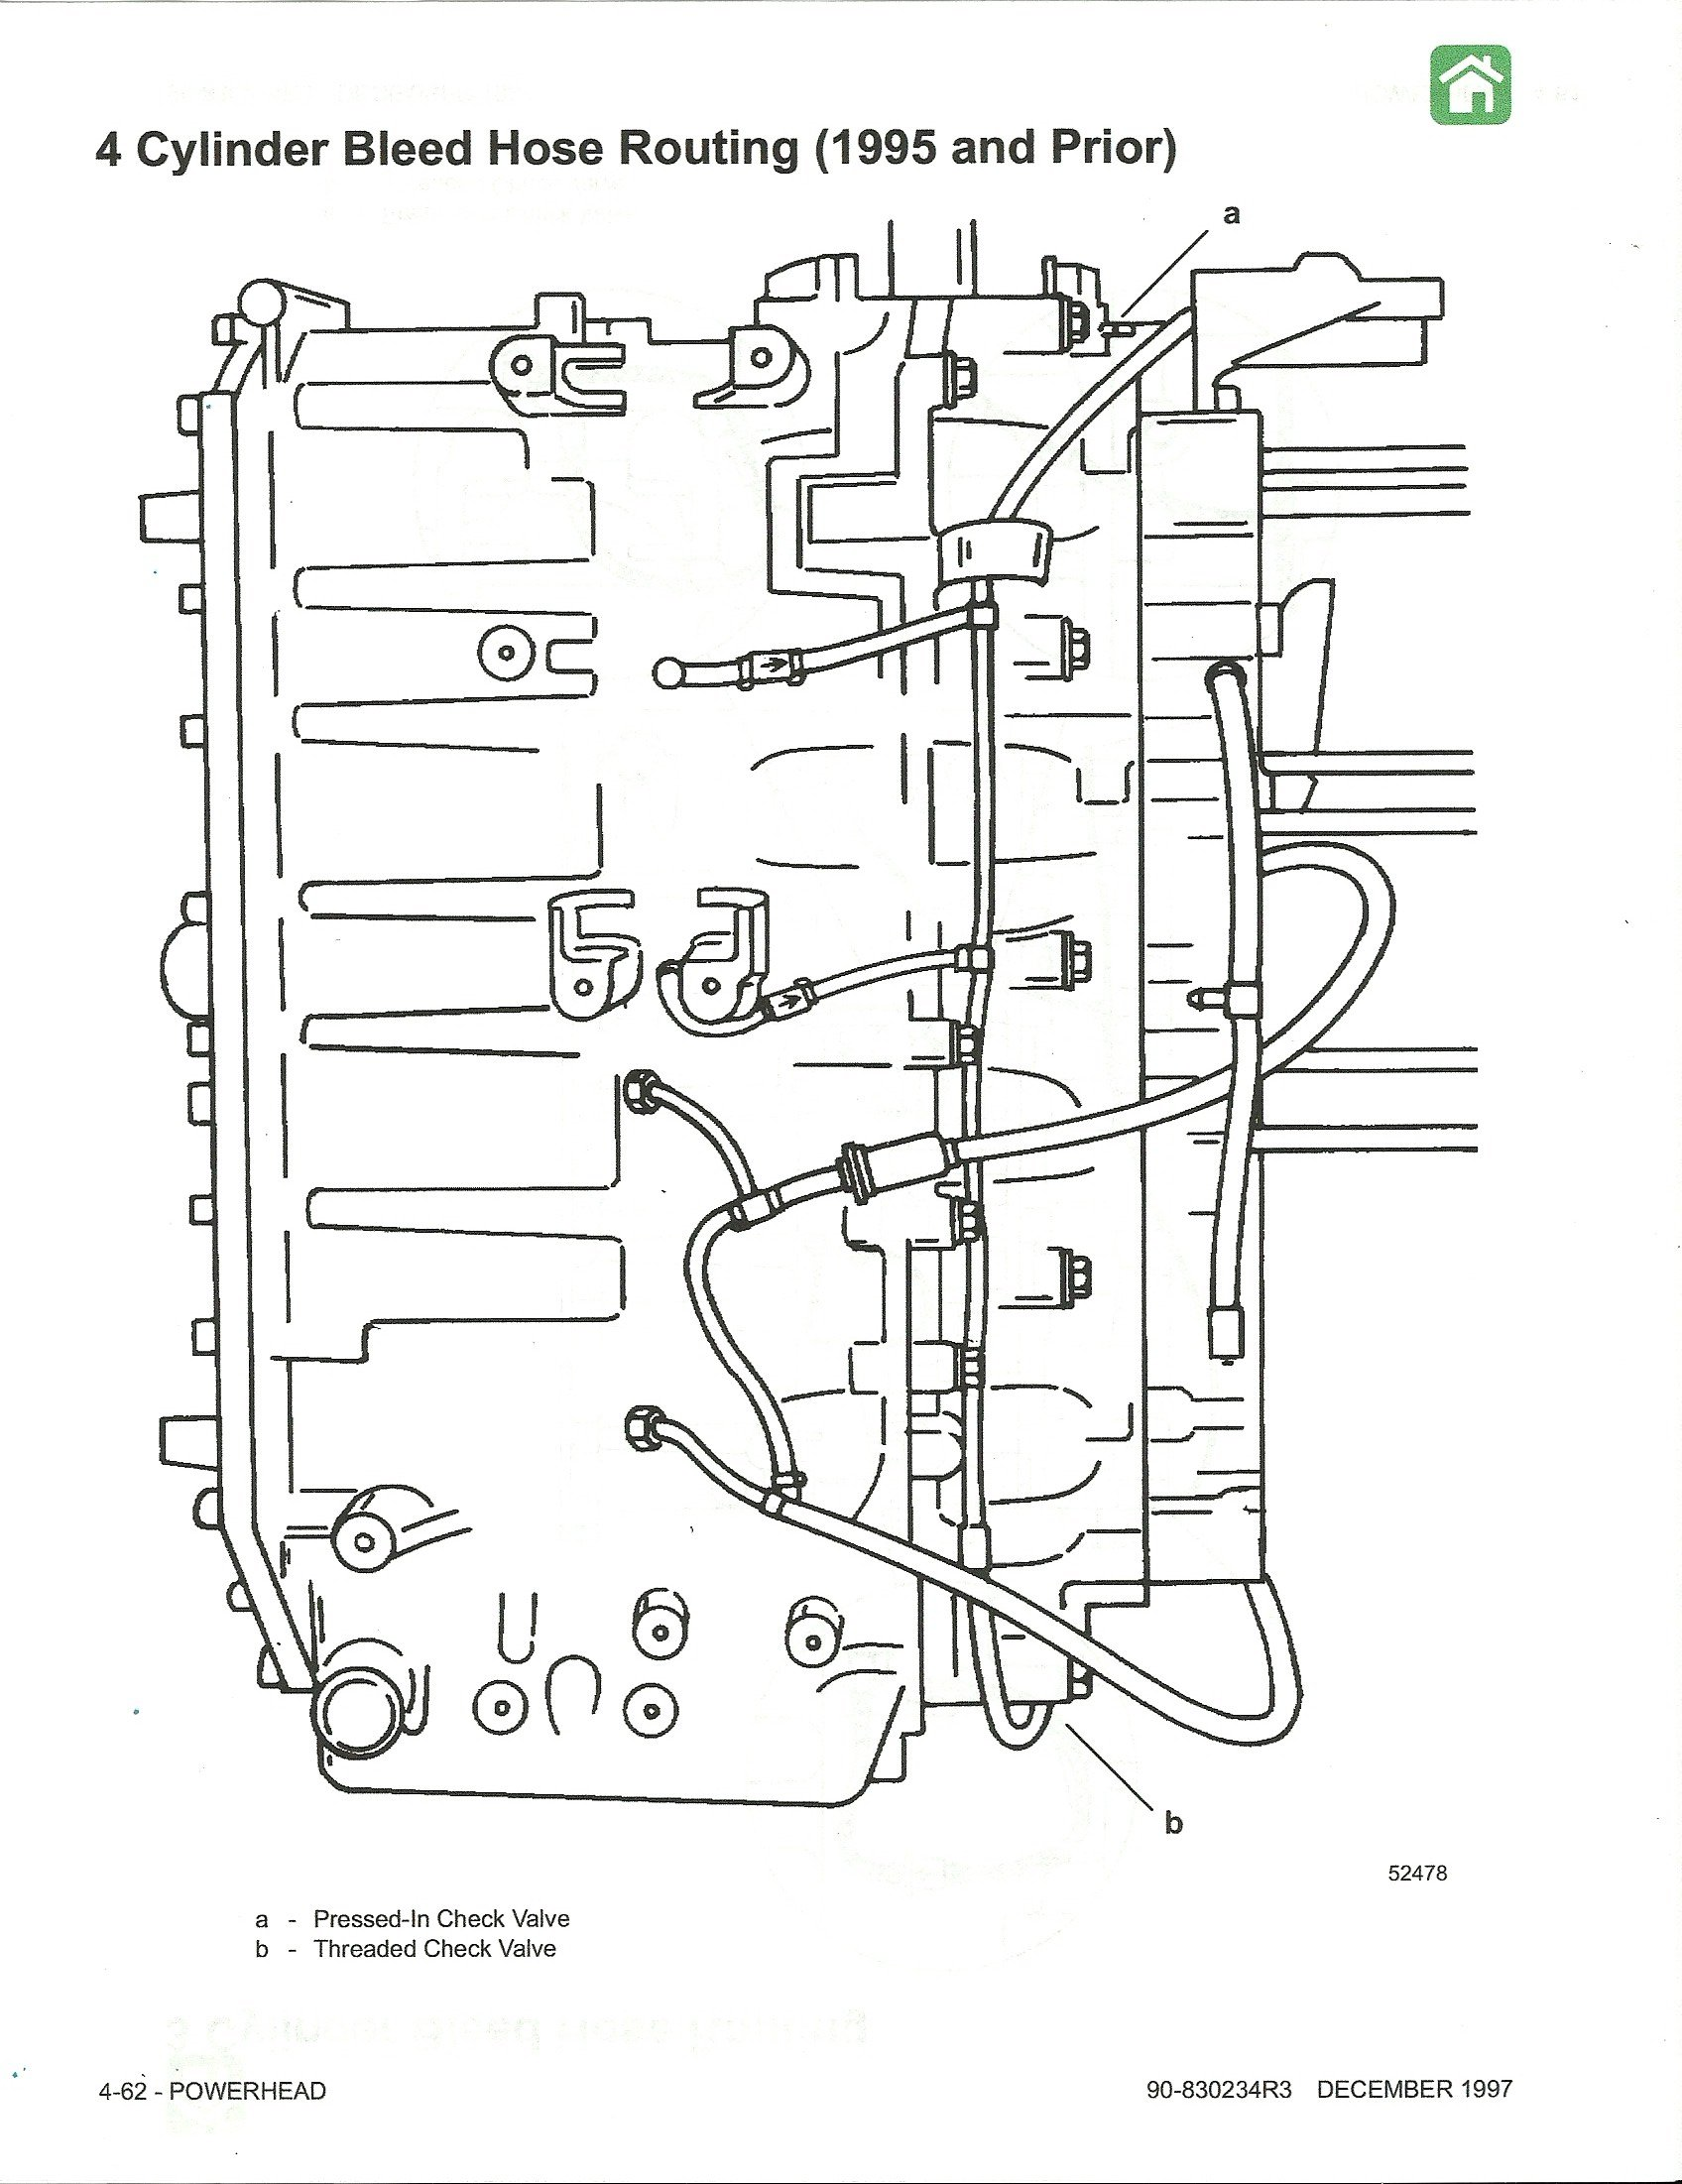 2010 08 10_174308_scan0004 i need a diagram for a mercury 93 115hp fuel reciruation system 115 hp mercury outboard wiring diagram at readyjetset.co